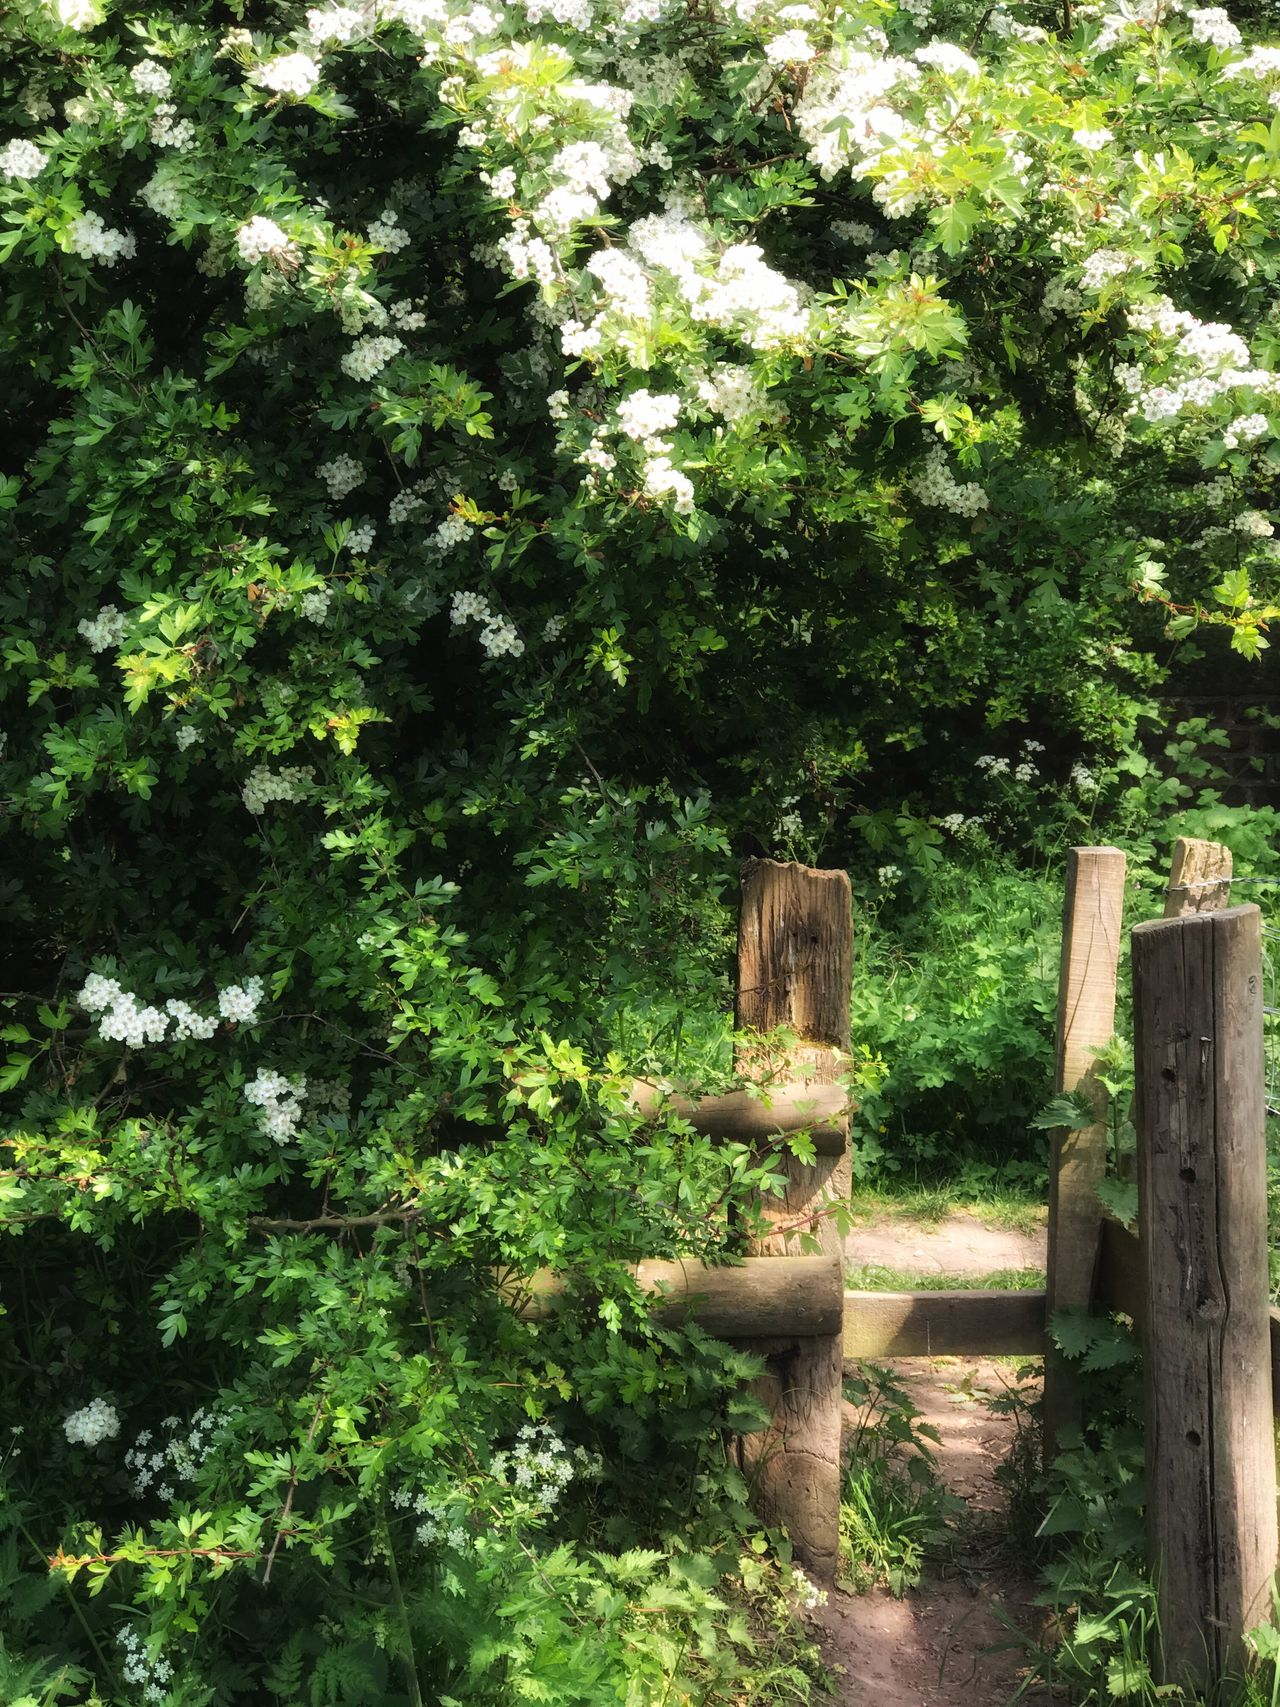 'Careful, you have to duck under the hawthorn as you step over stile.' - Glow version Nature Growth Tree No People Day Outdoors Hawthorn Blossom Hawthorn Stile Beauty In Nature Growth Tranquility Green Color Wood - Material Nature